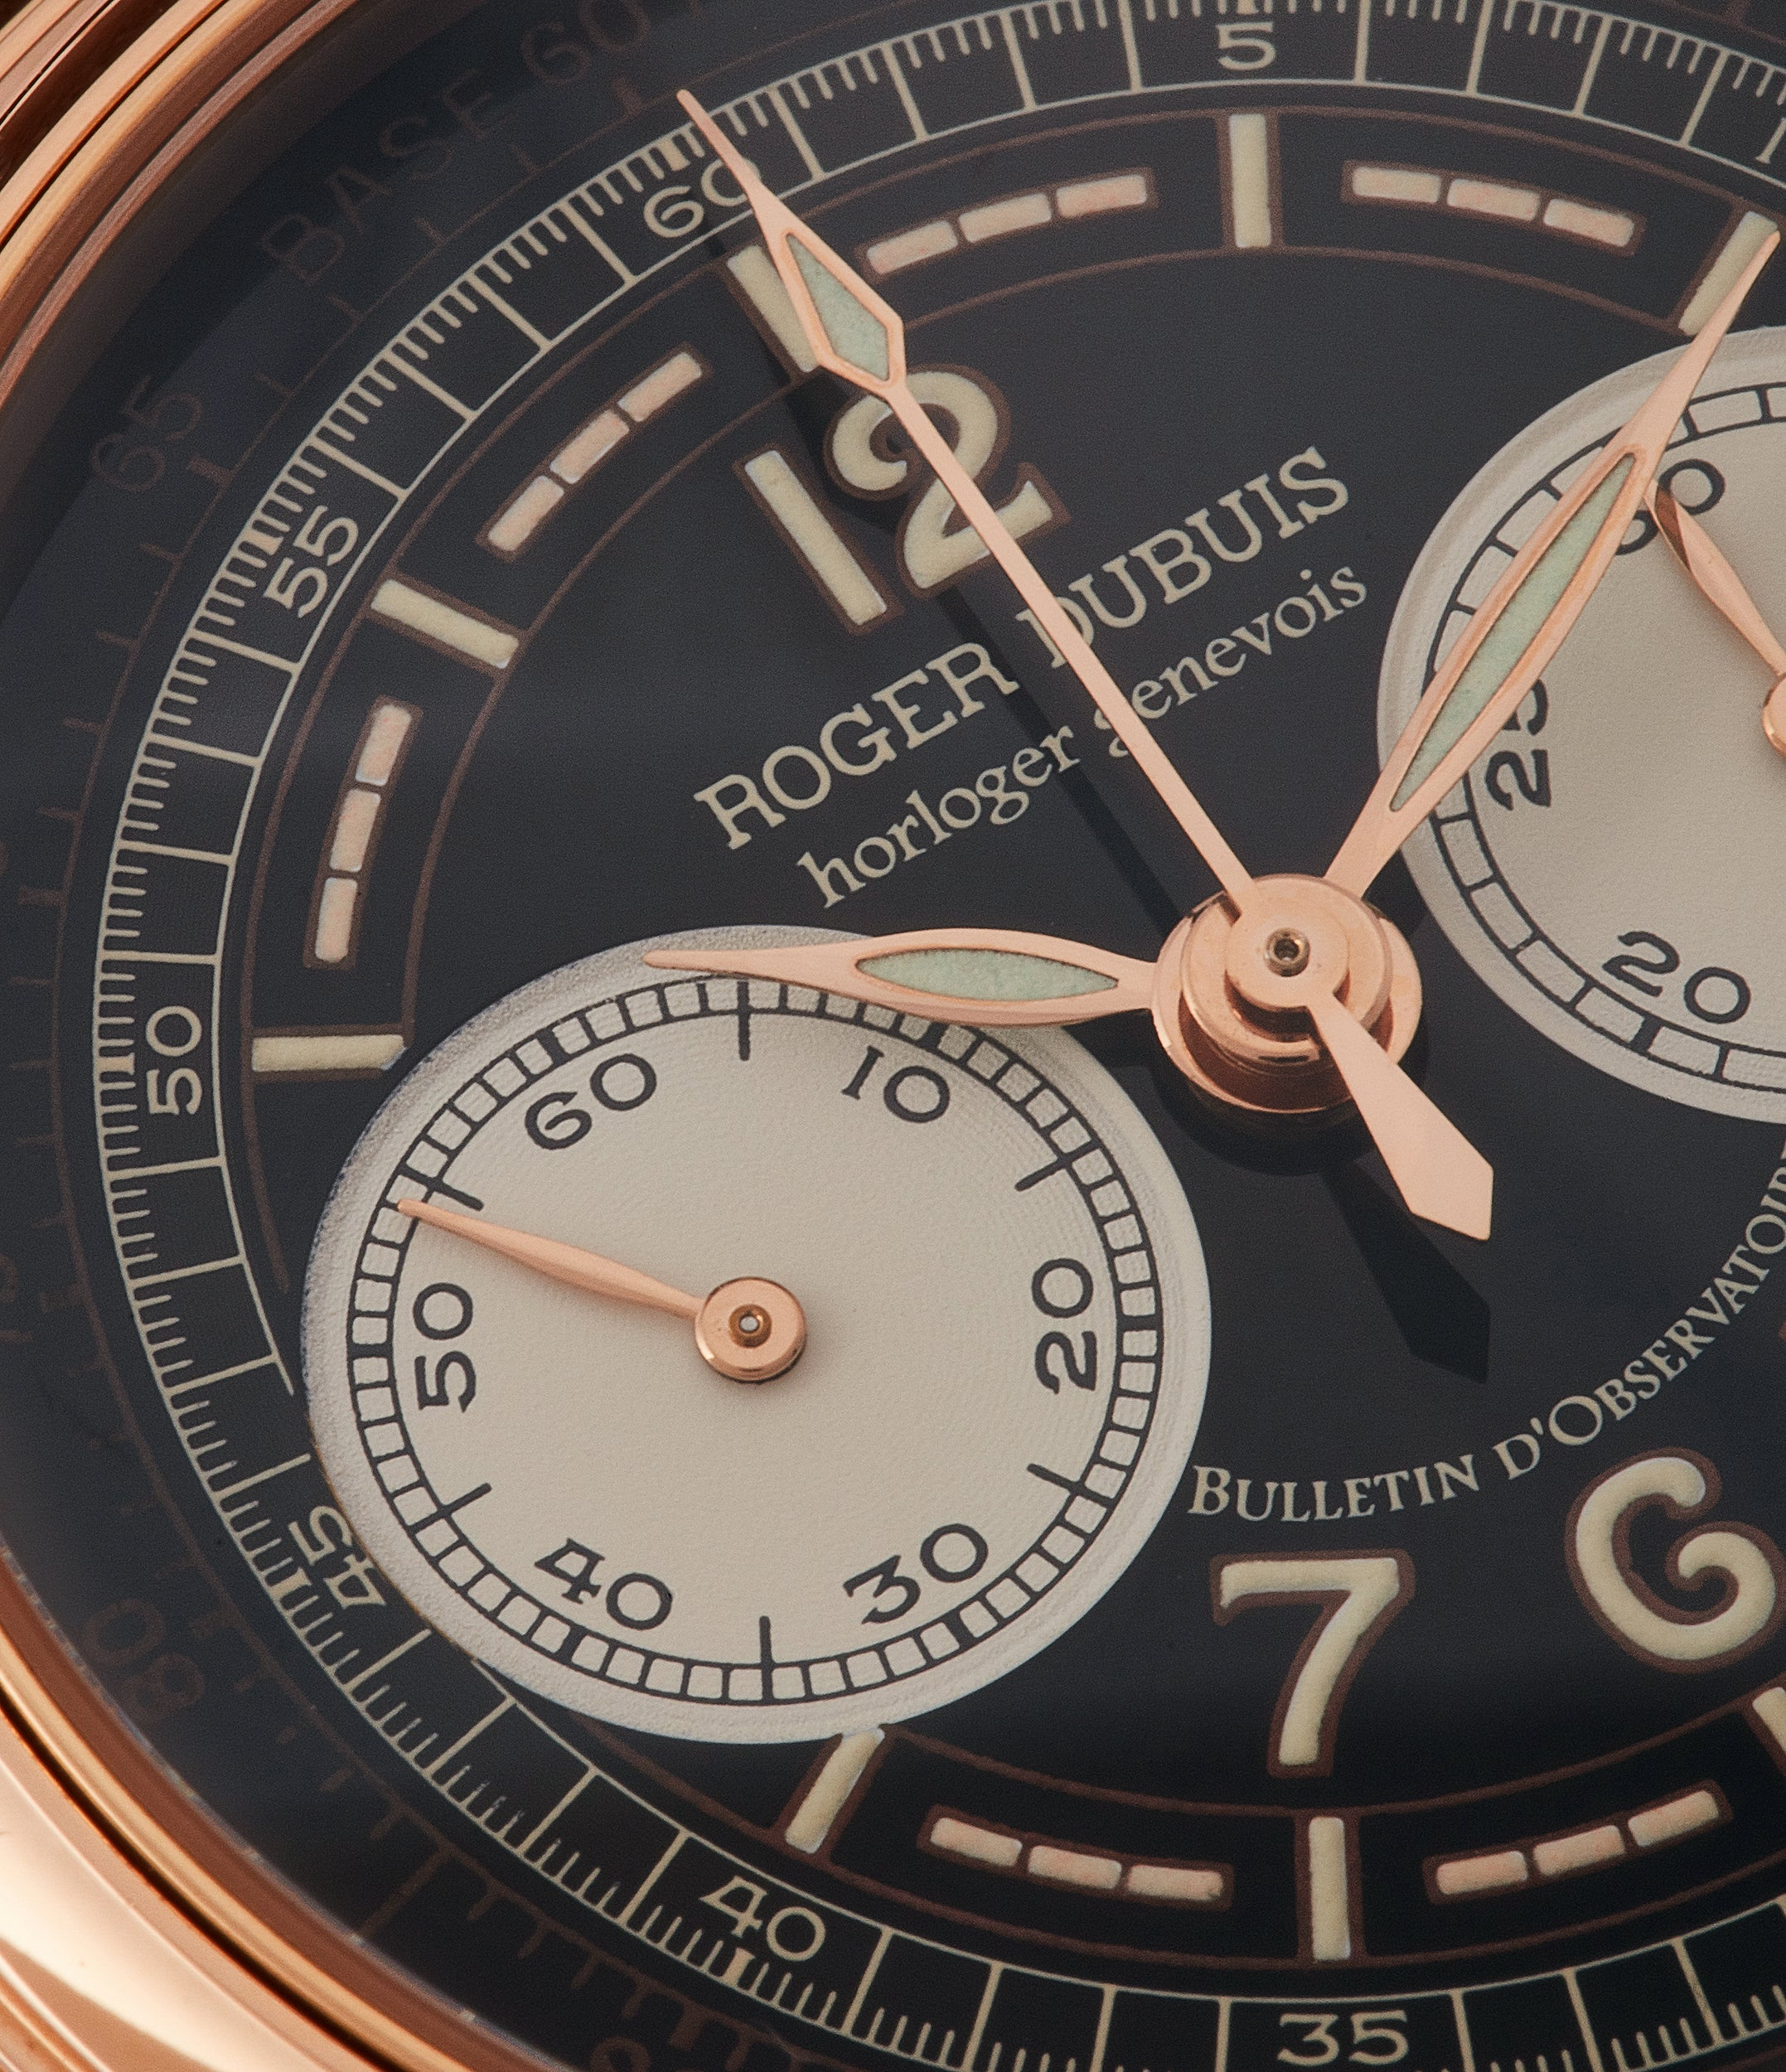 rare watch Roger Dubuis Hommage Chronograph Cal. RD56 H37 560 rose gold watch black dial for sale online at A Collected Man London UK specialist of rare watches